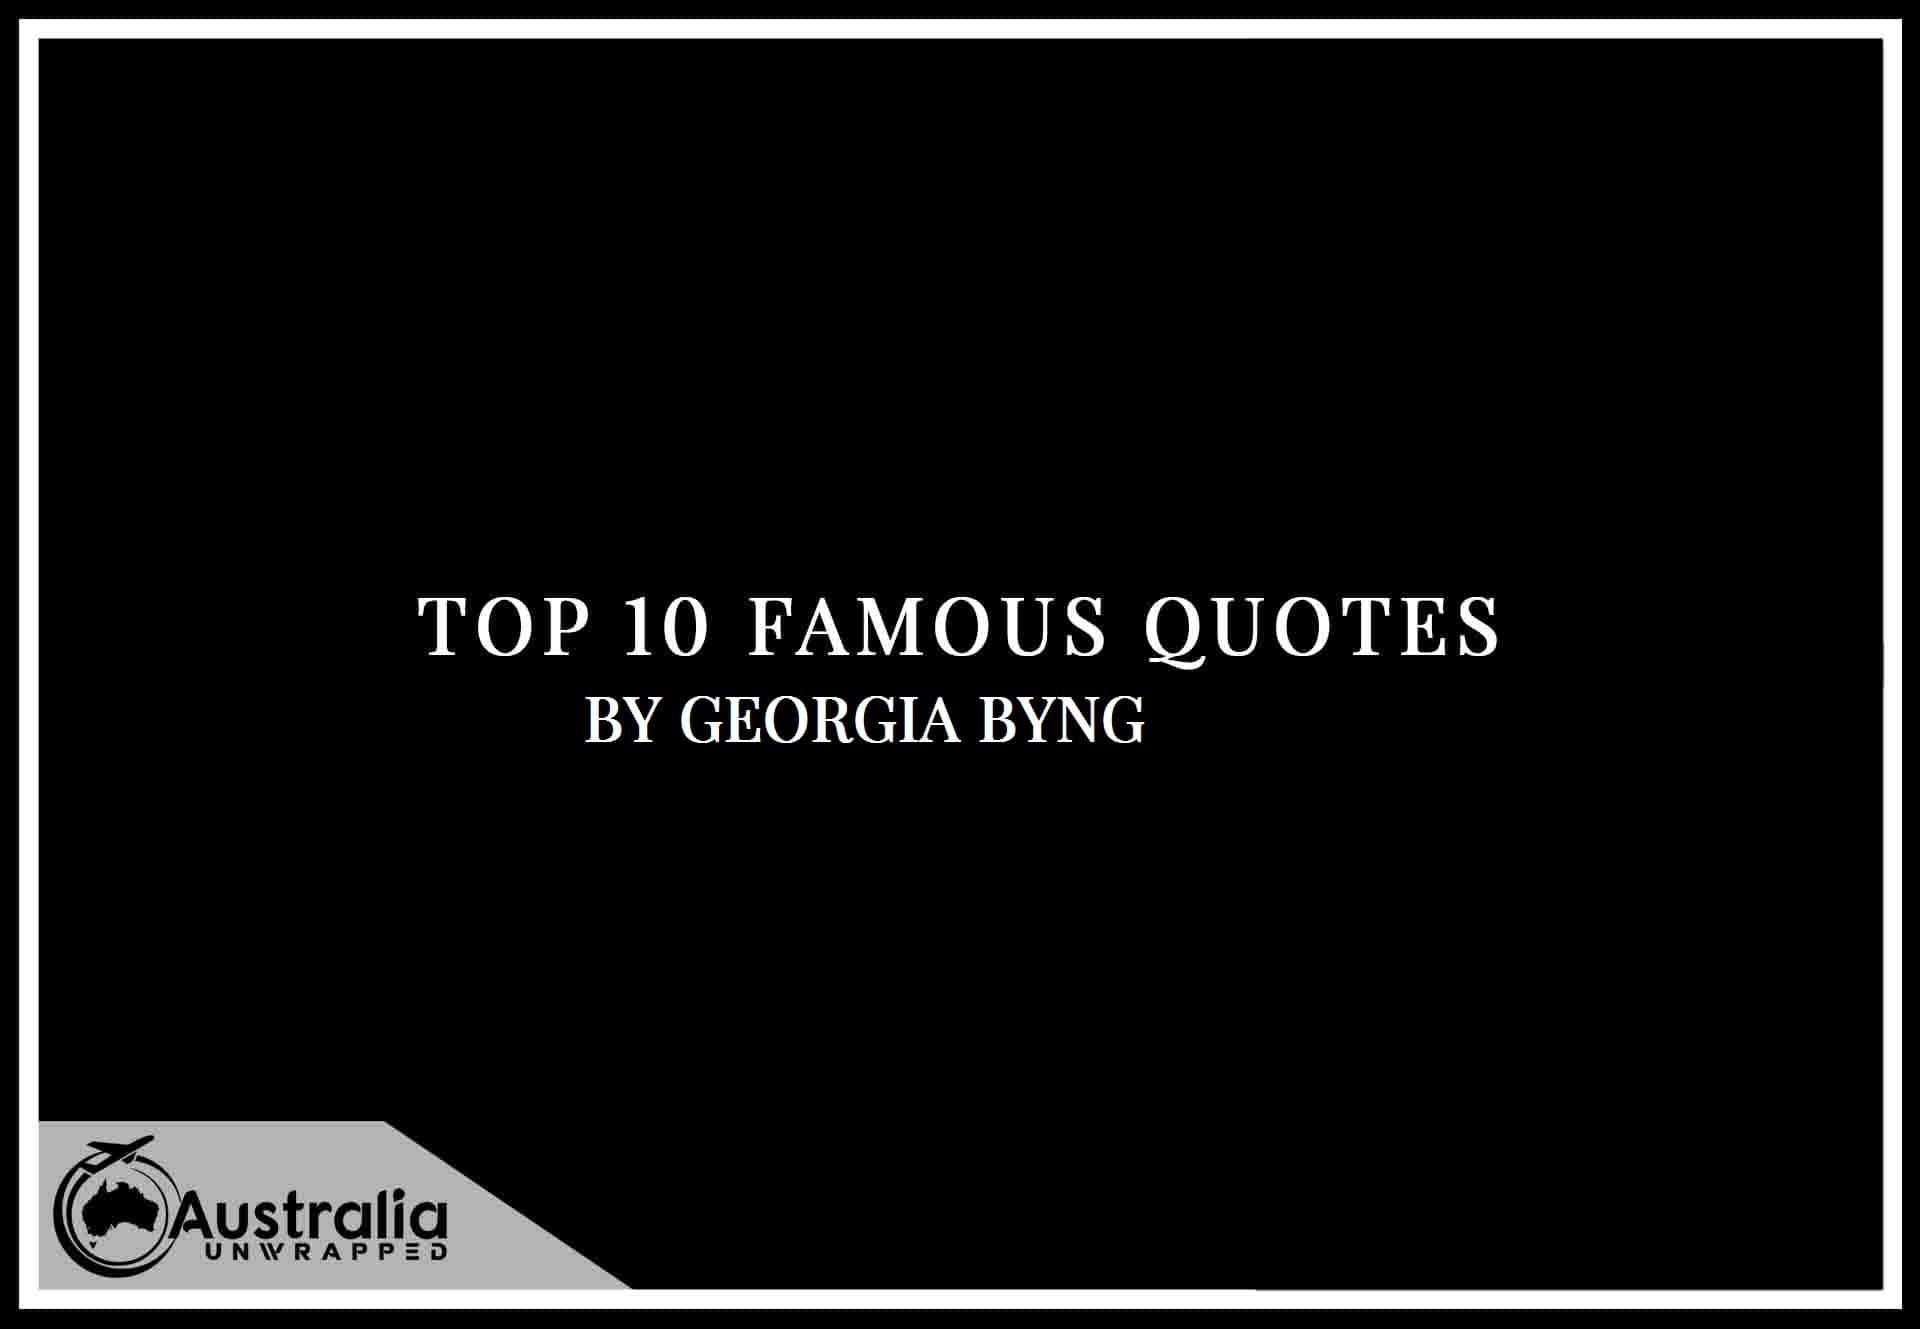 Georgia Byng's Top 10 Popular and Famous Quotes